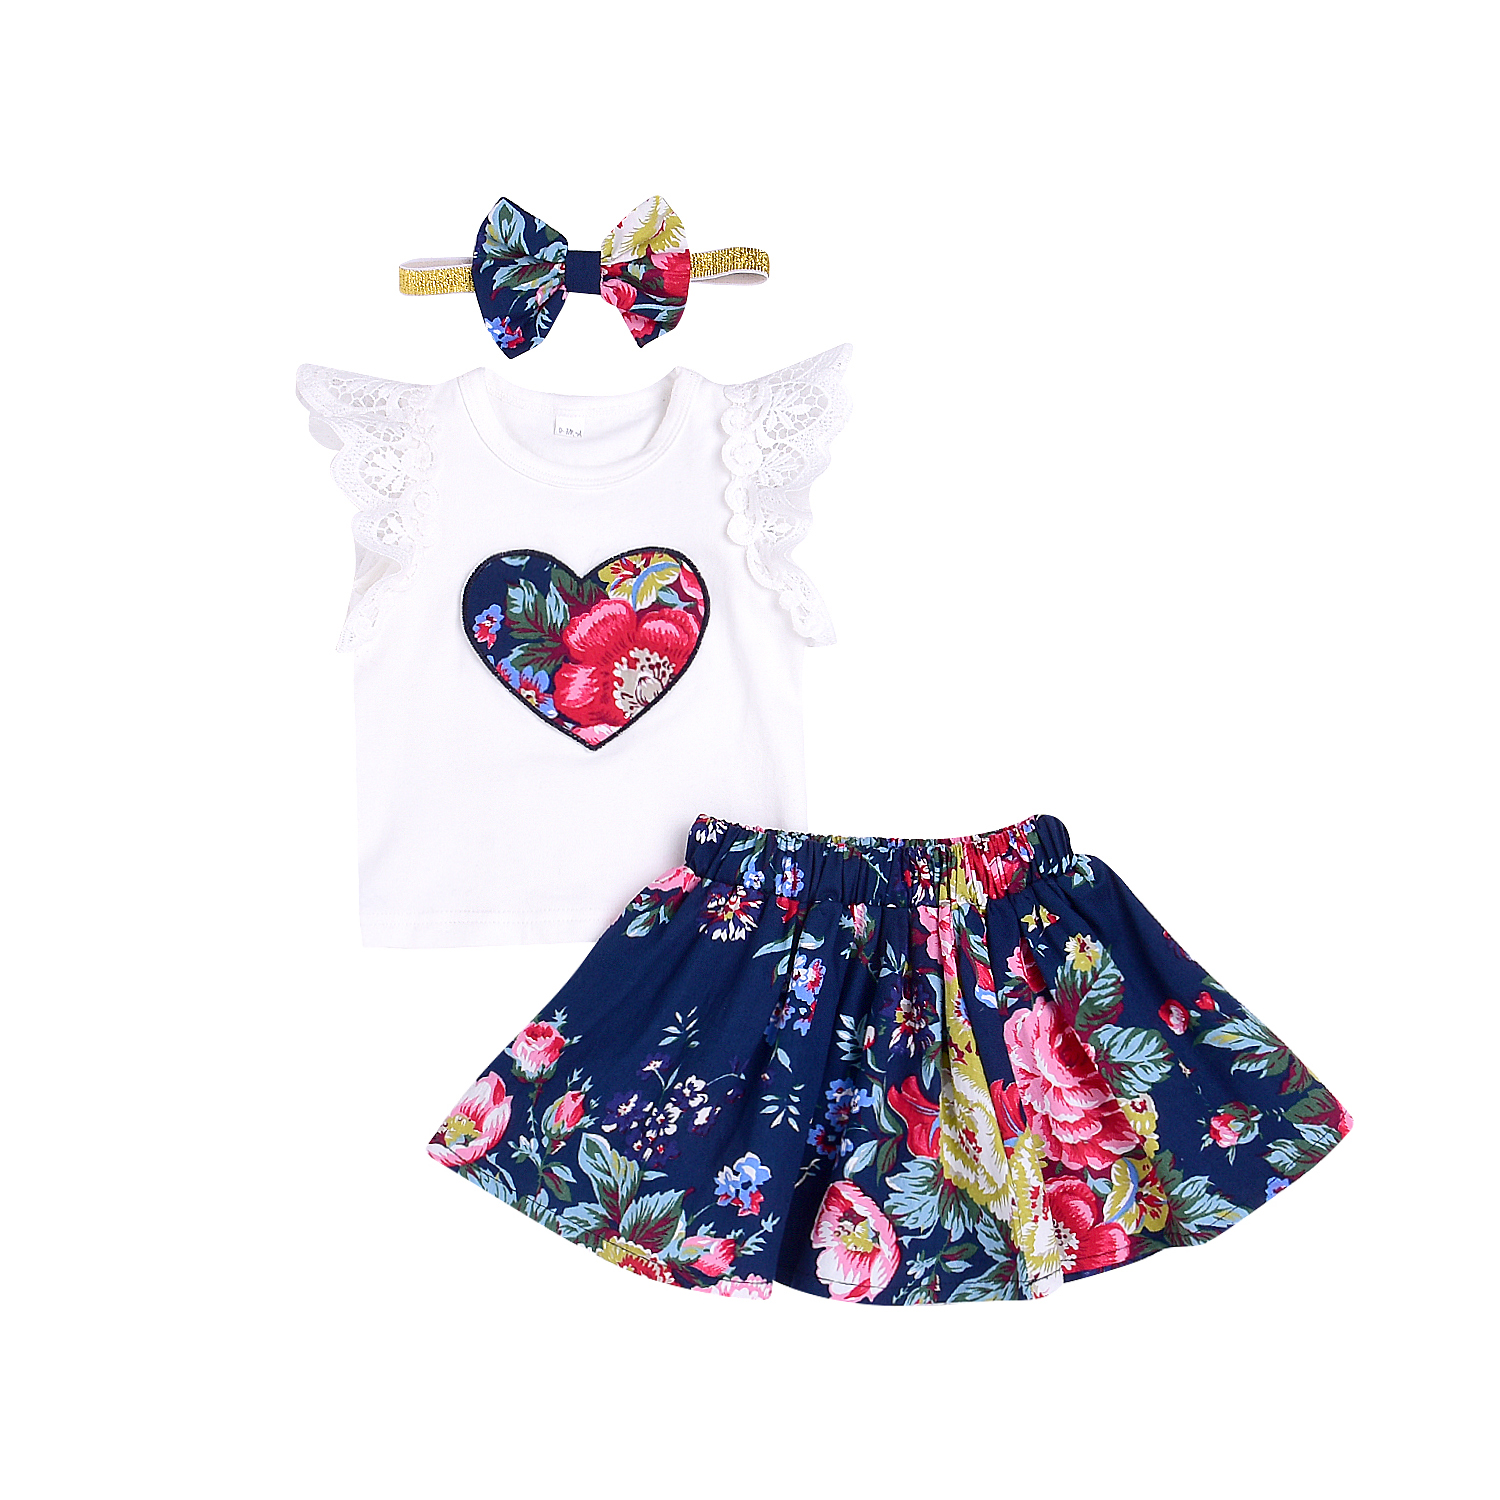 0-24M Kids Baby Girls Summer HOT SALE Heart Short Sleeve T-shirt+Floral Skirt+Headband Cute Clothes Sets 3PCS